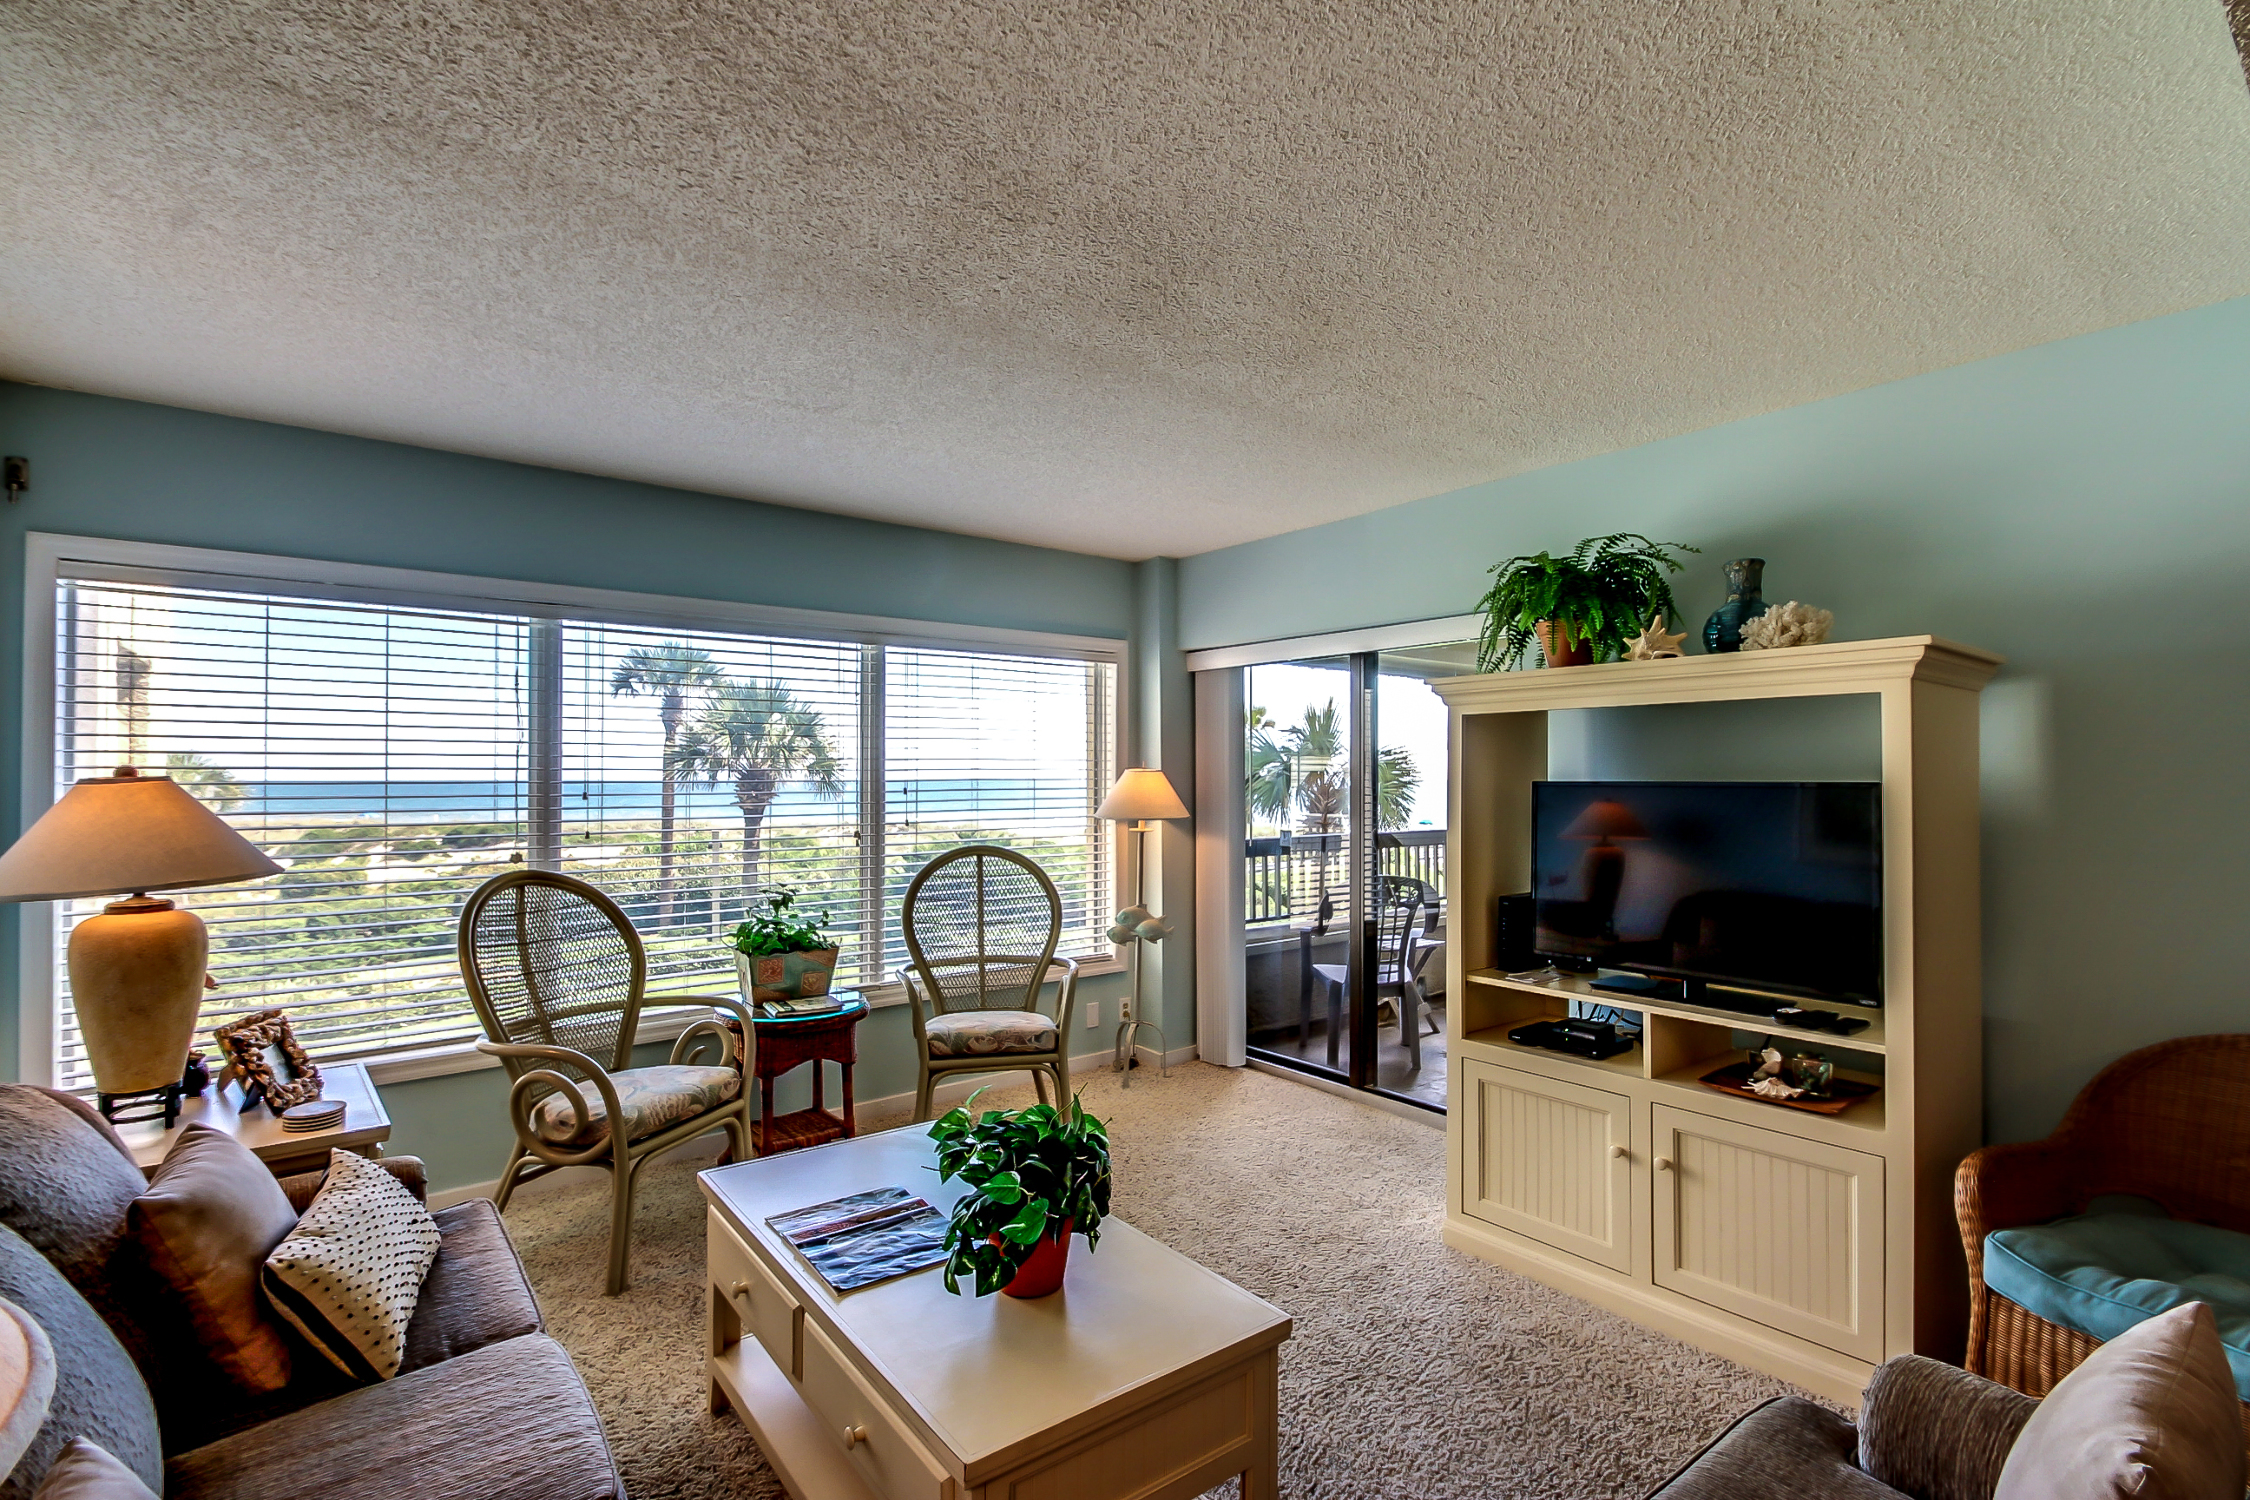 Condominium for Sale at Amelia Surf & Racquet Club 4800 Amelia Island Pkwy Fernandina Beach, Florida, 32034 United States